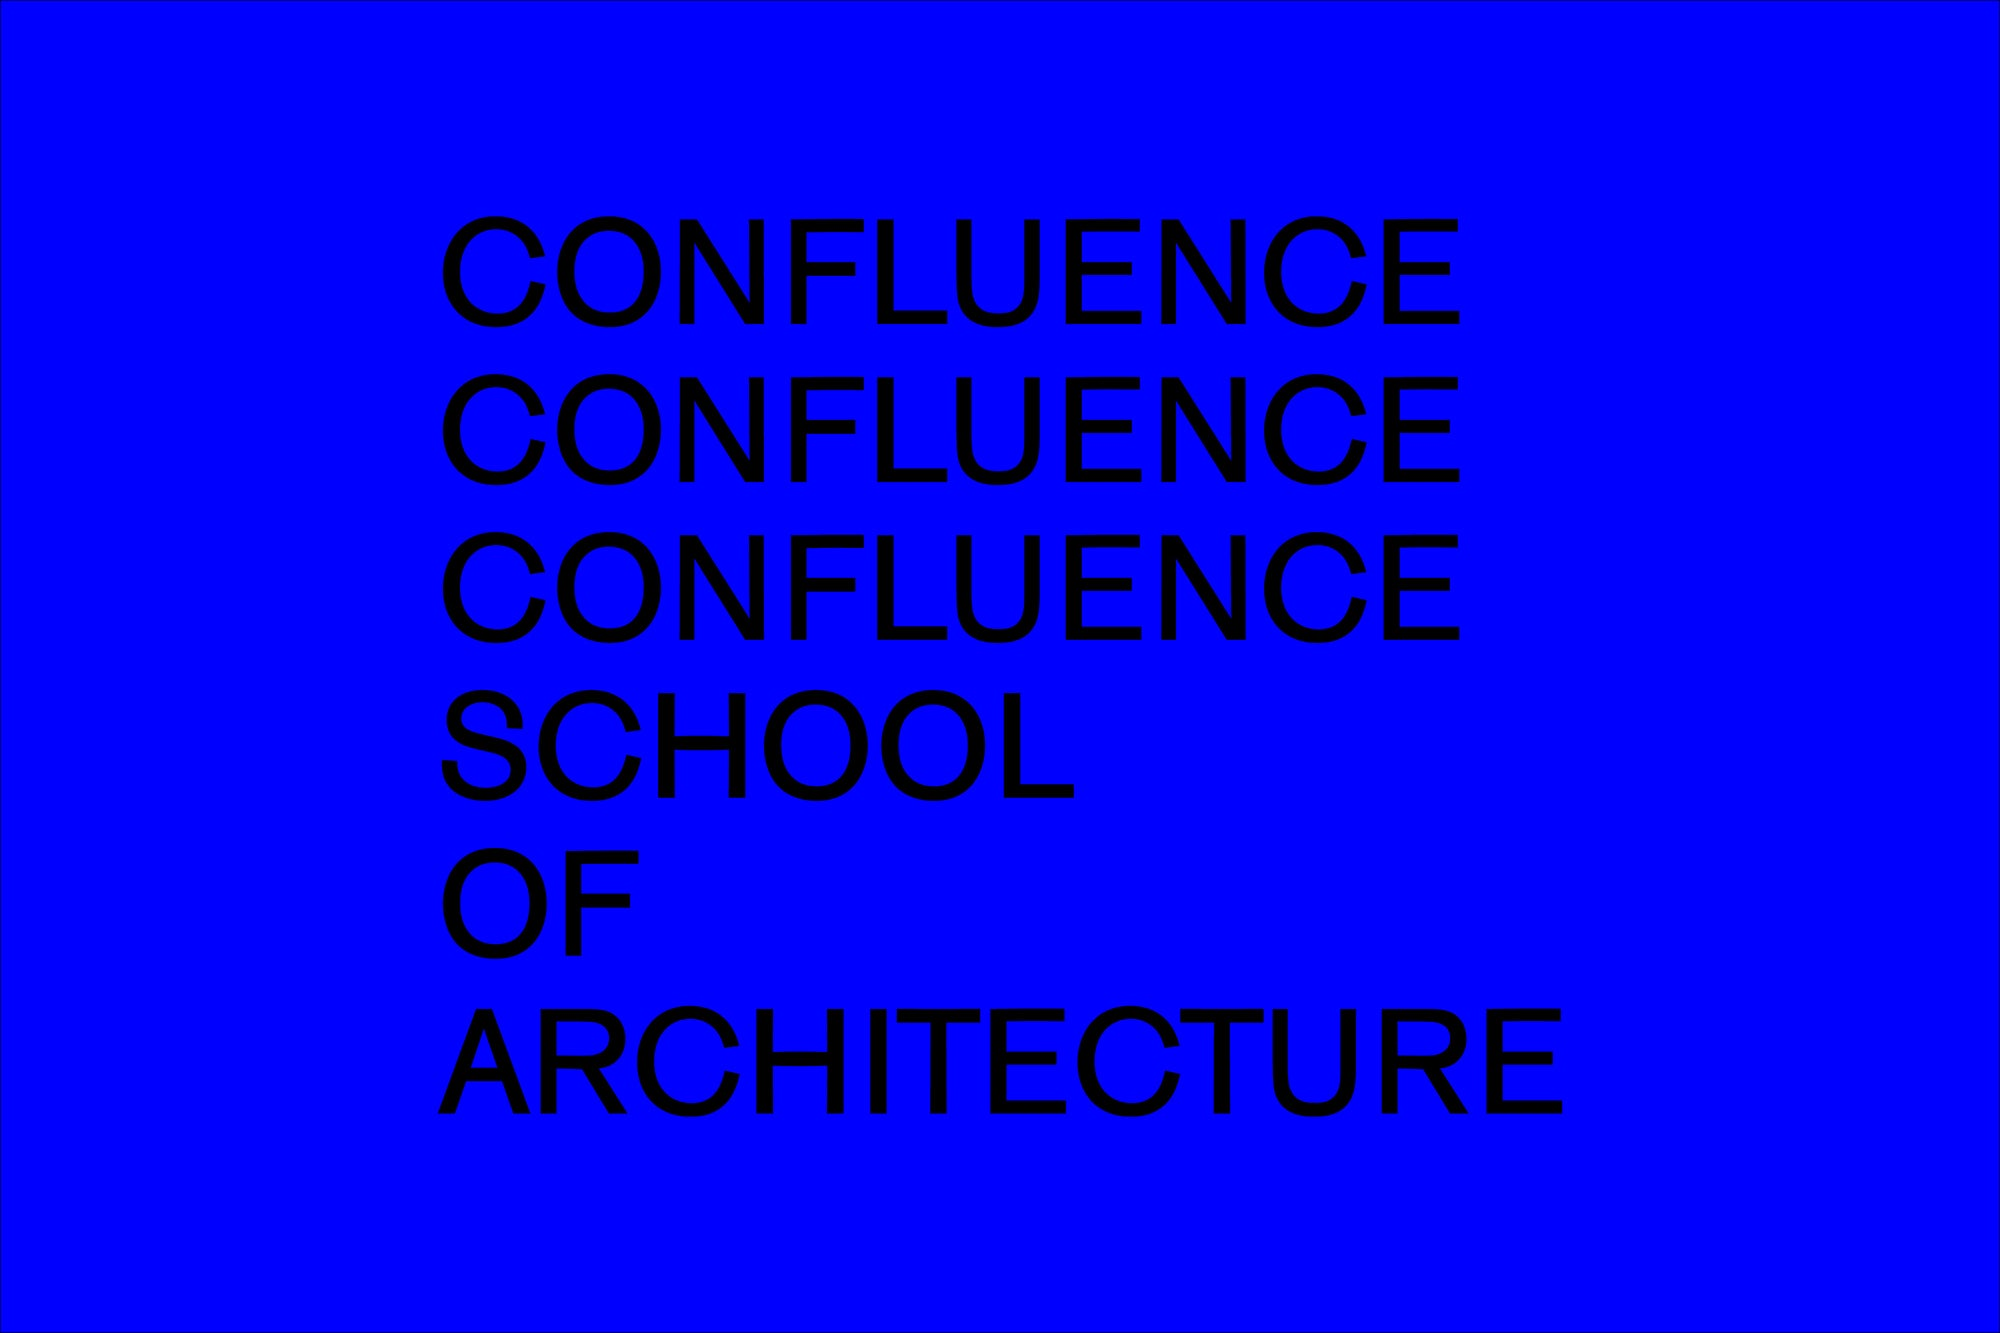 Axel Peemöller: Confluence School of Architecture